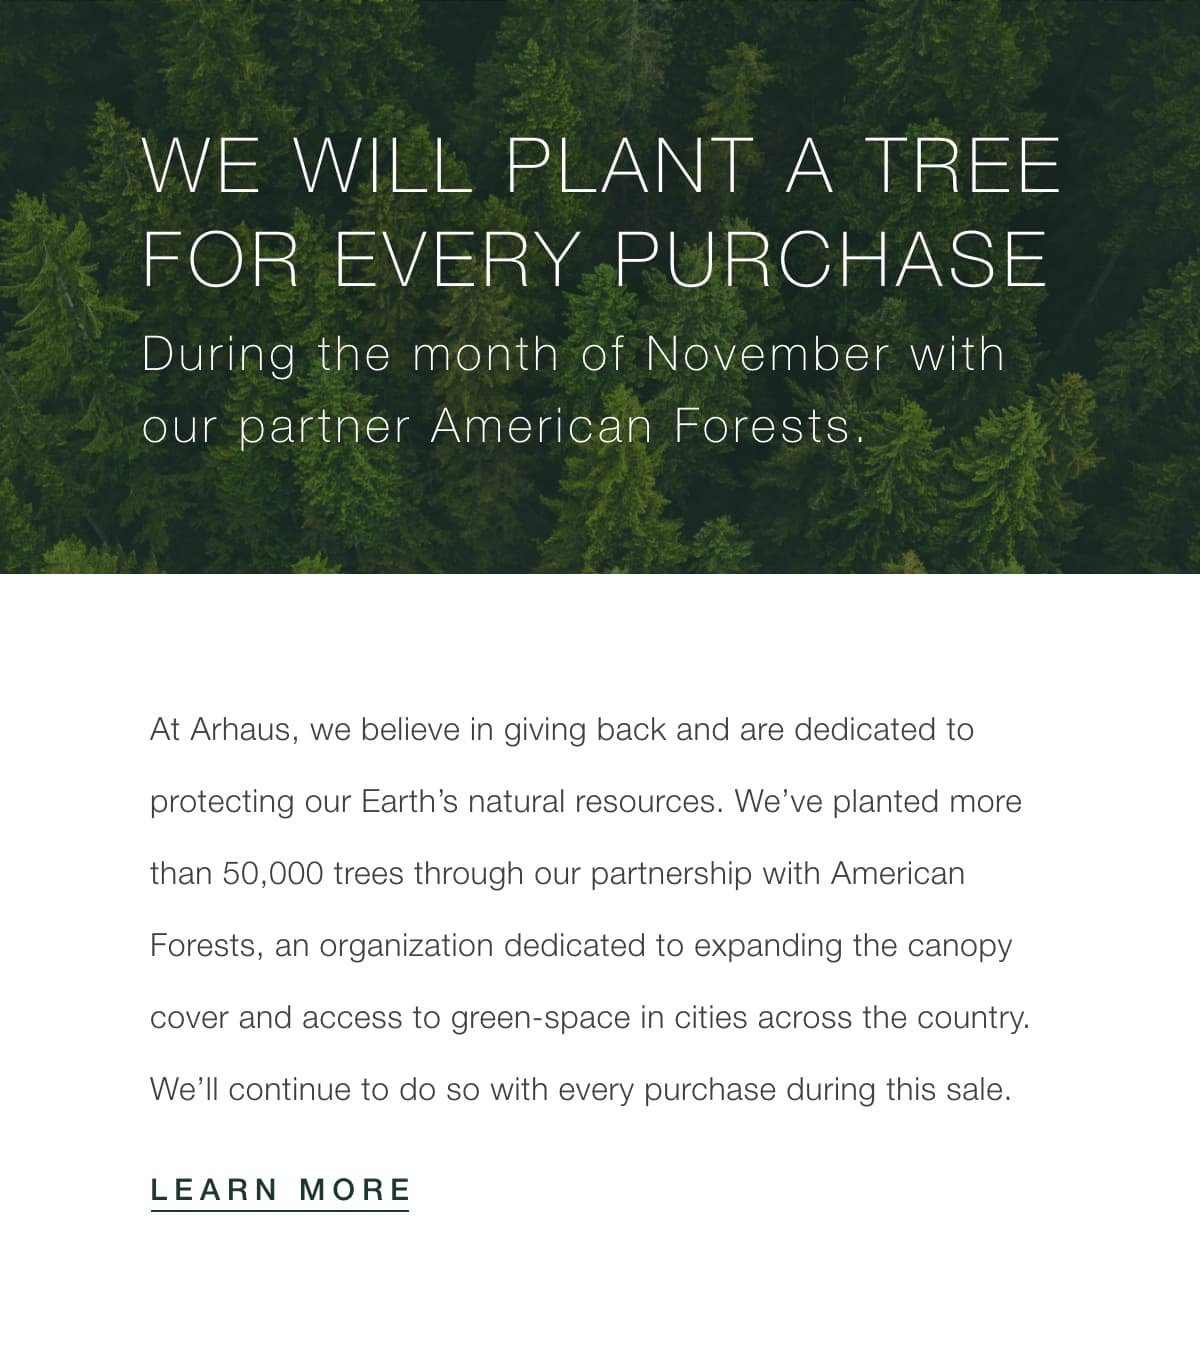 We will plant a tree for every purchase during the month of November